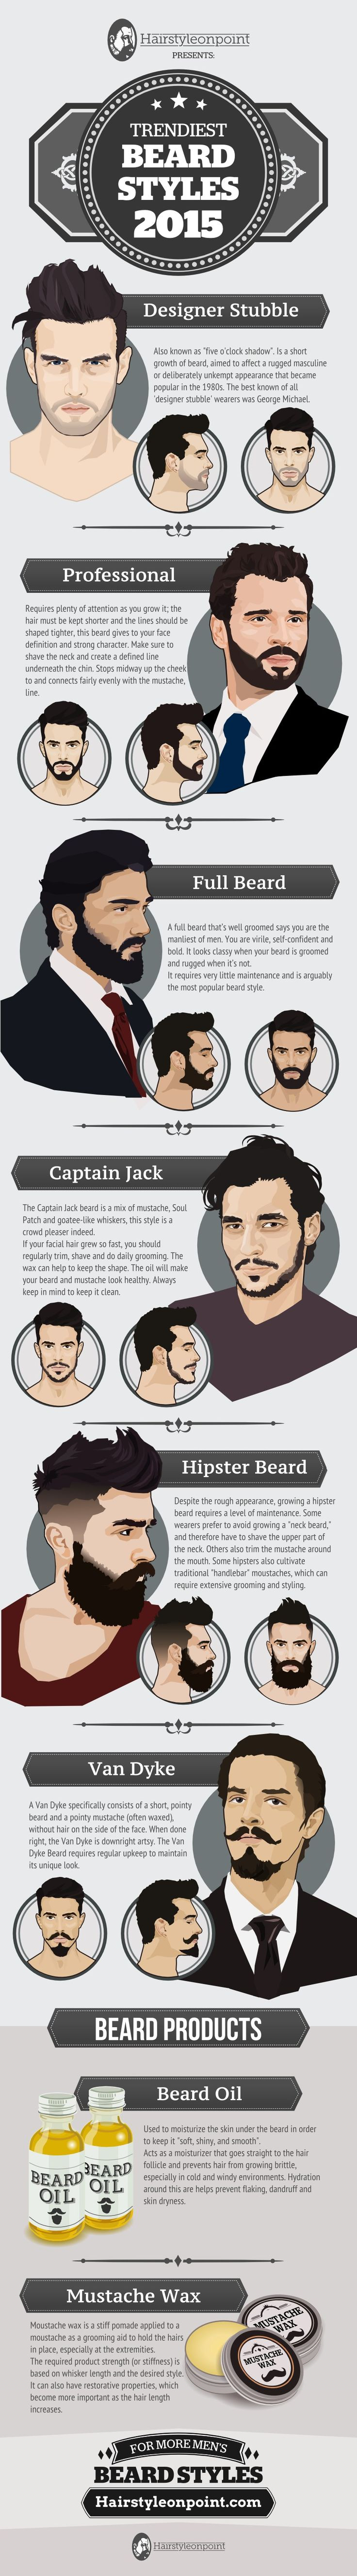 53 best BEARDS AND HAIRSTYLES images on Pinterest